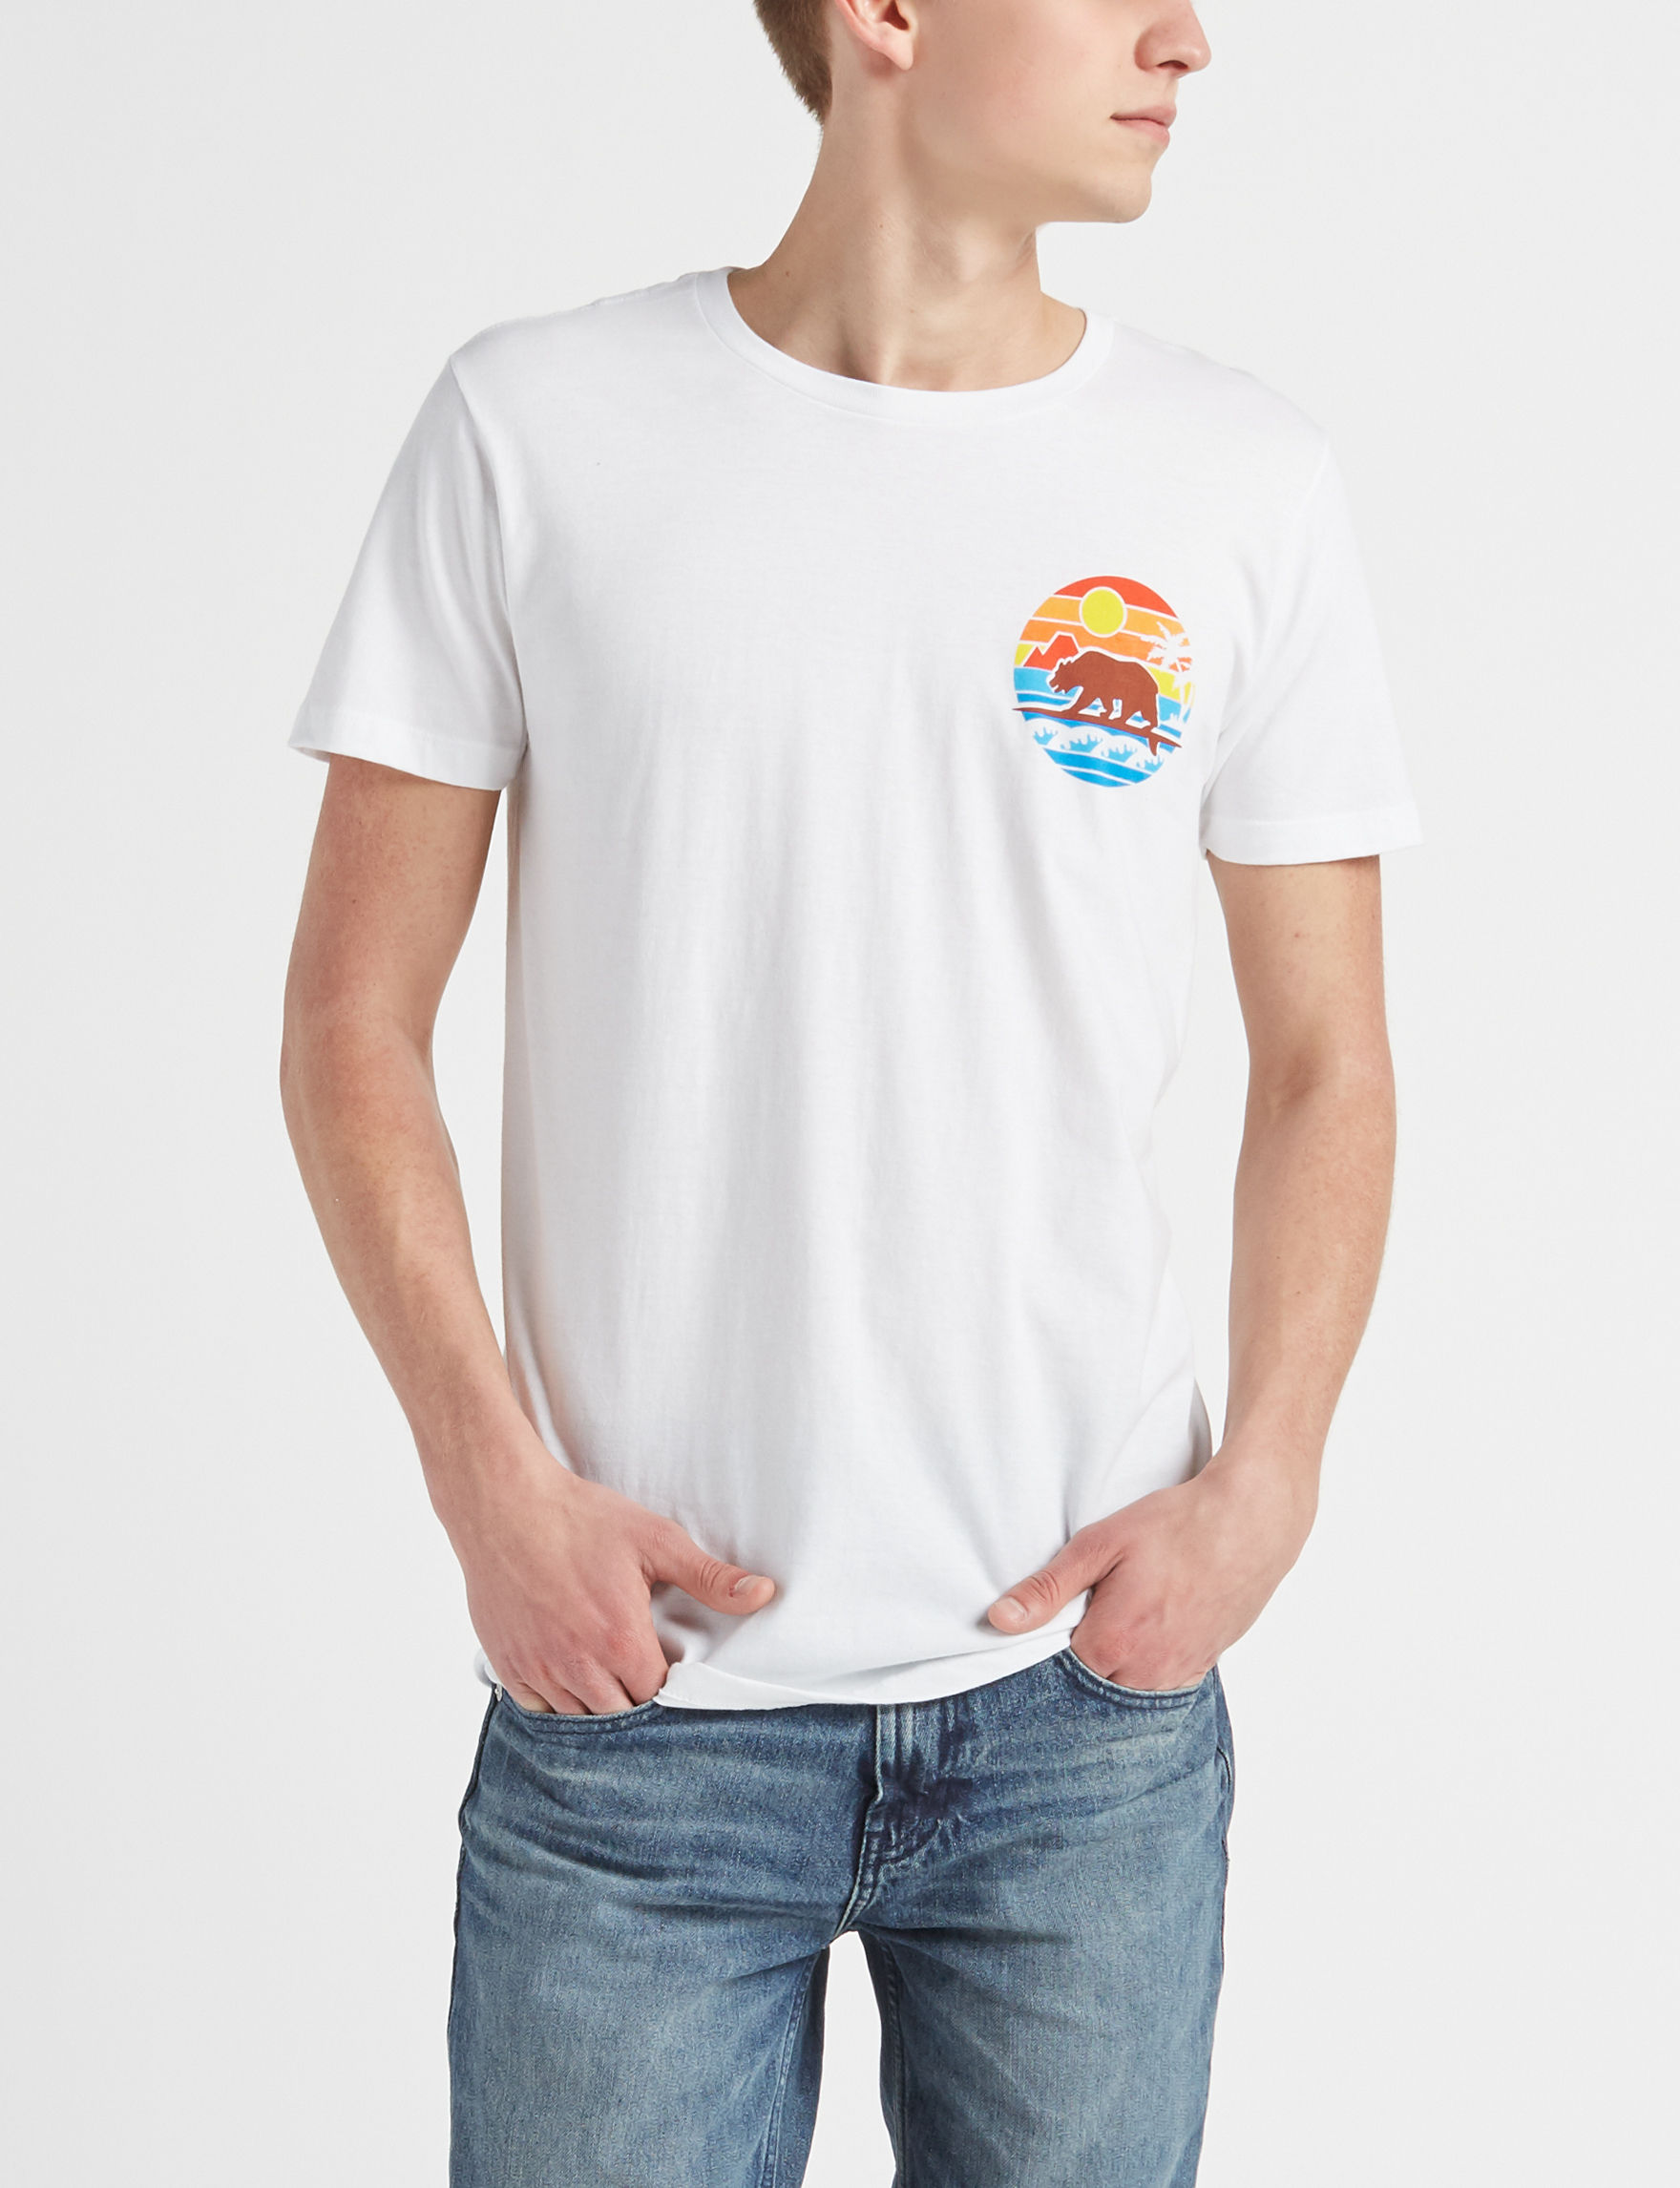 Ocean Current White Multi Tees & Tanks